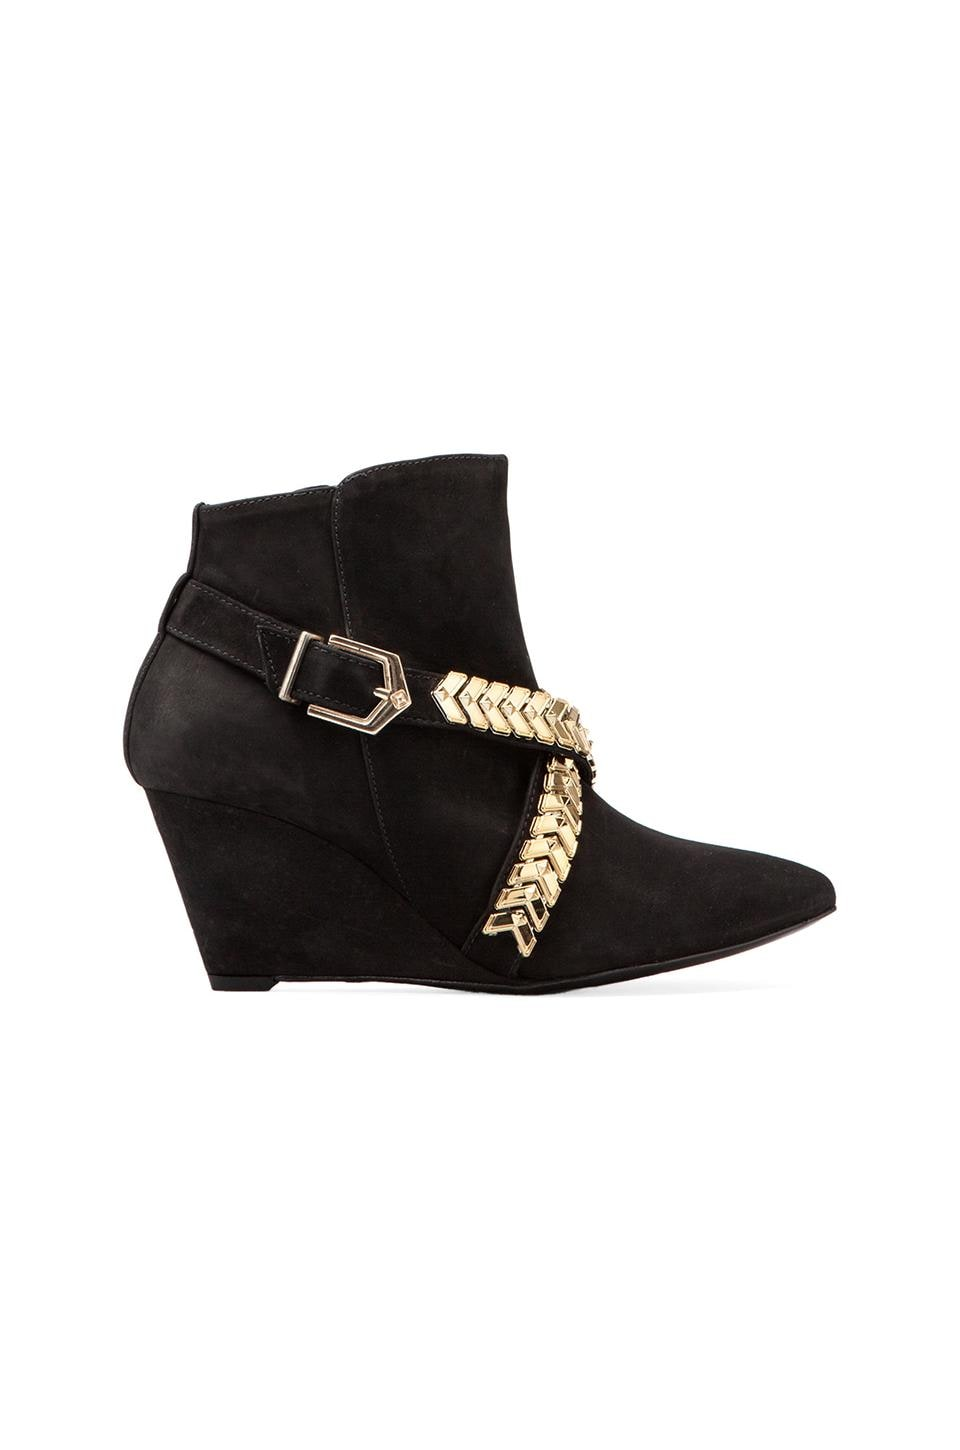 Schutz Bow Bootie in Black